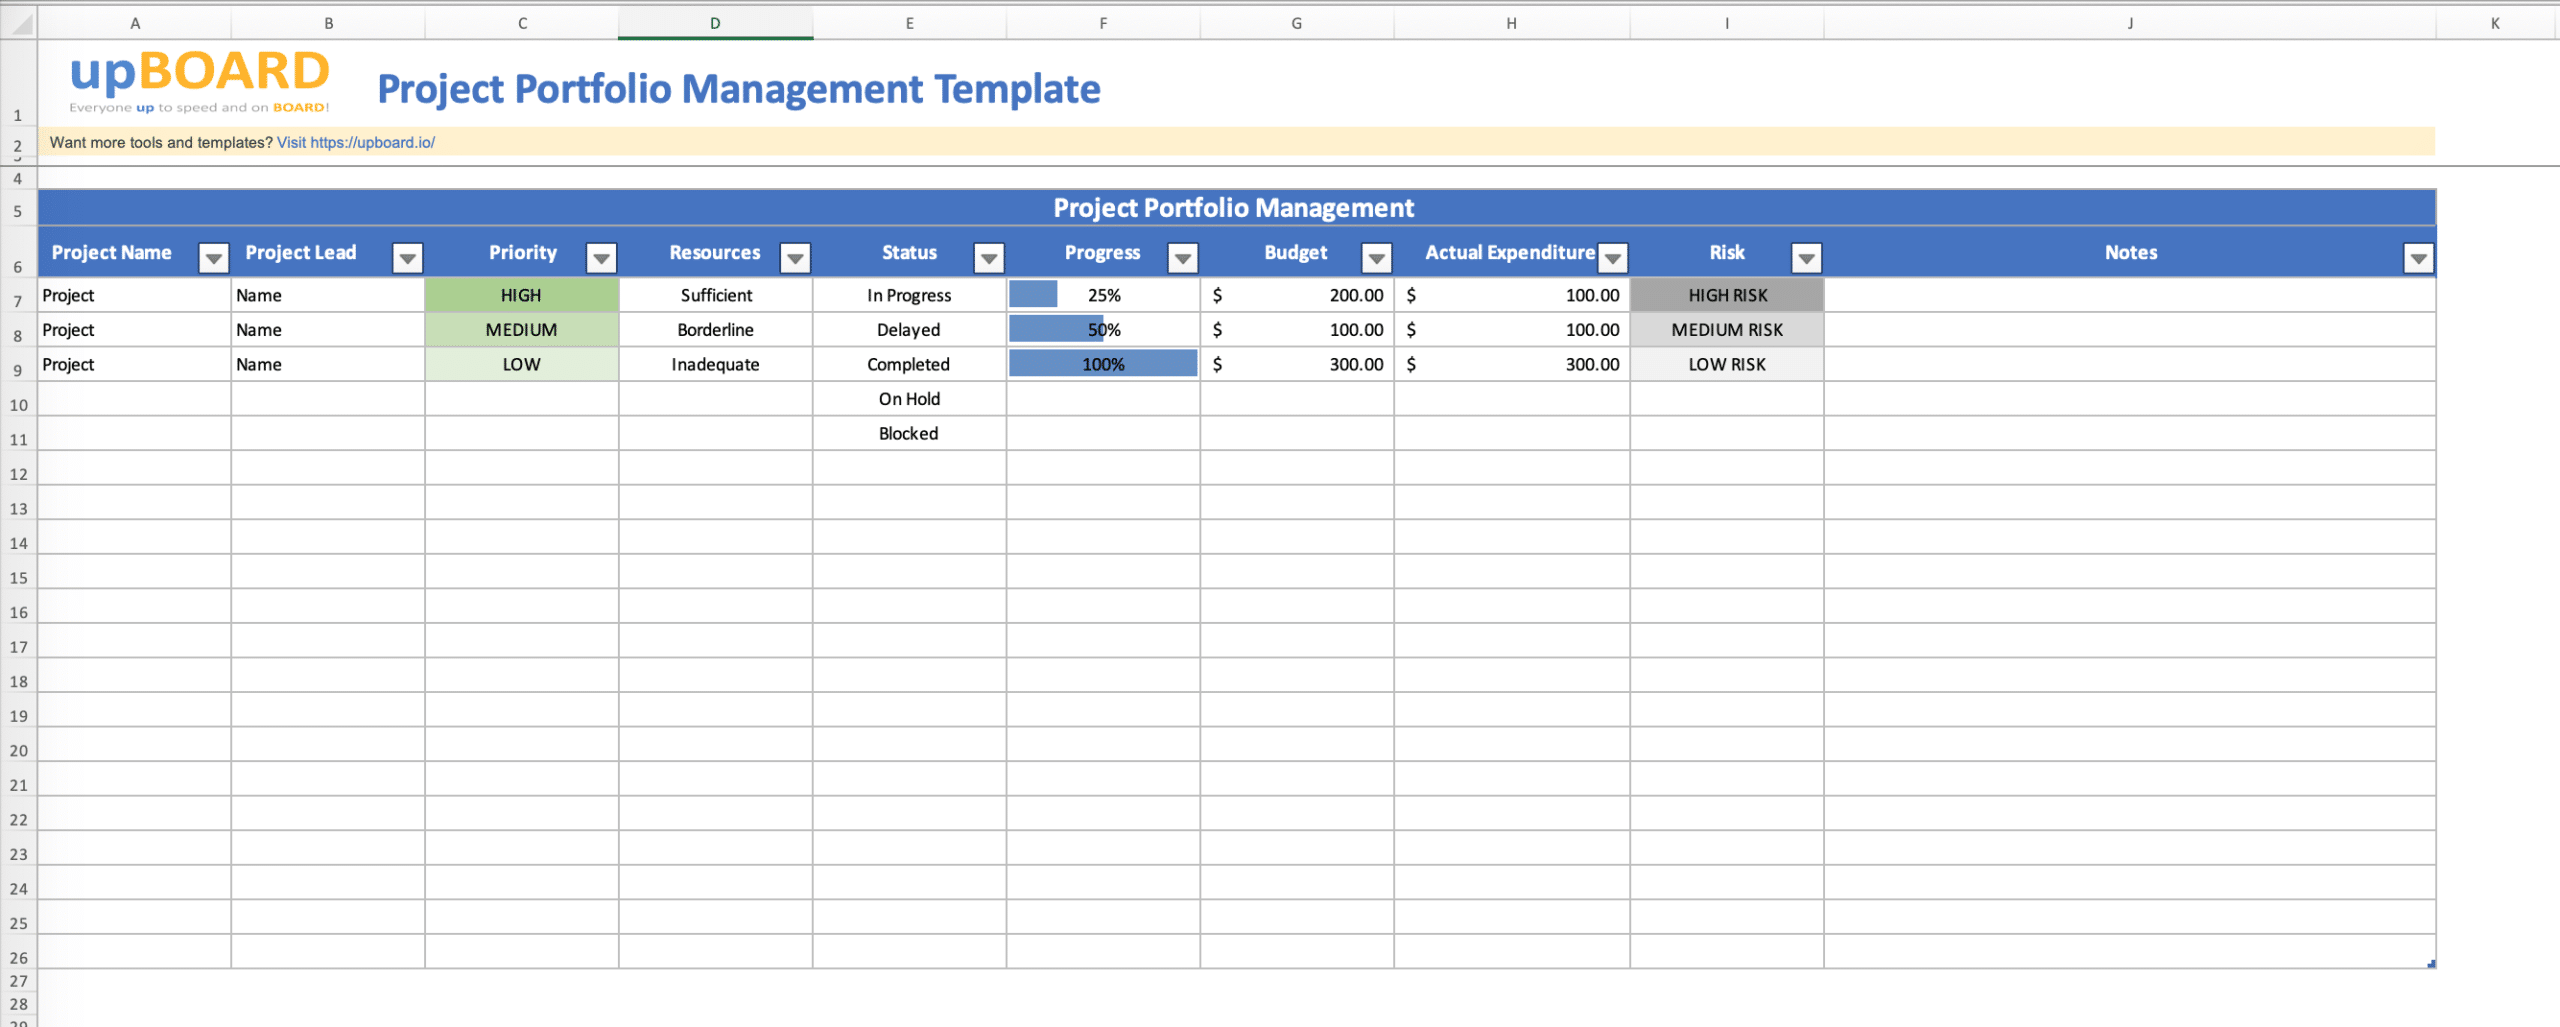 Event Chain Metholology - Free Excel Tool